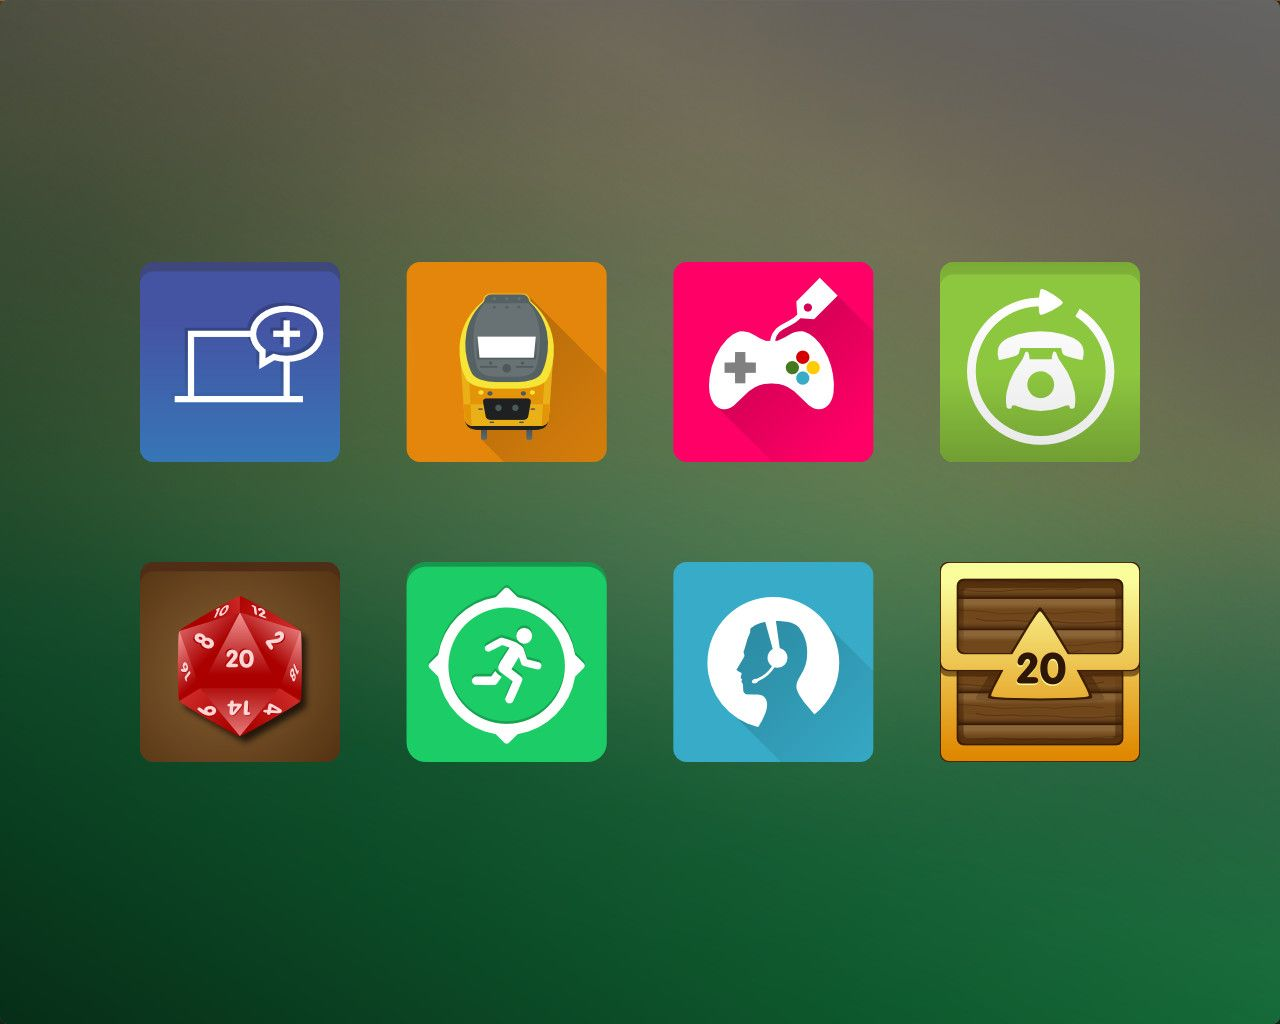 Lollipop Style Android App Icon Design by artworkbean - 63098 | BR ...